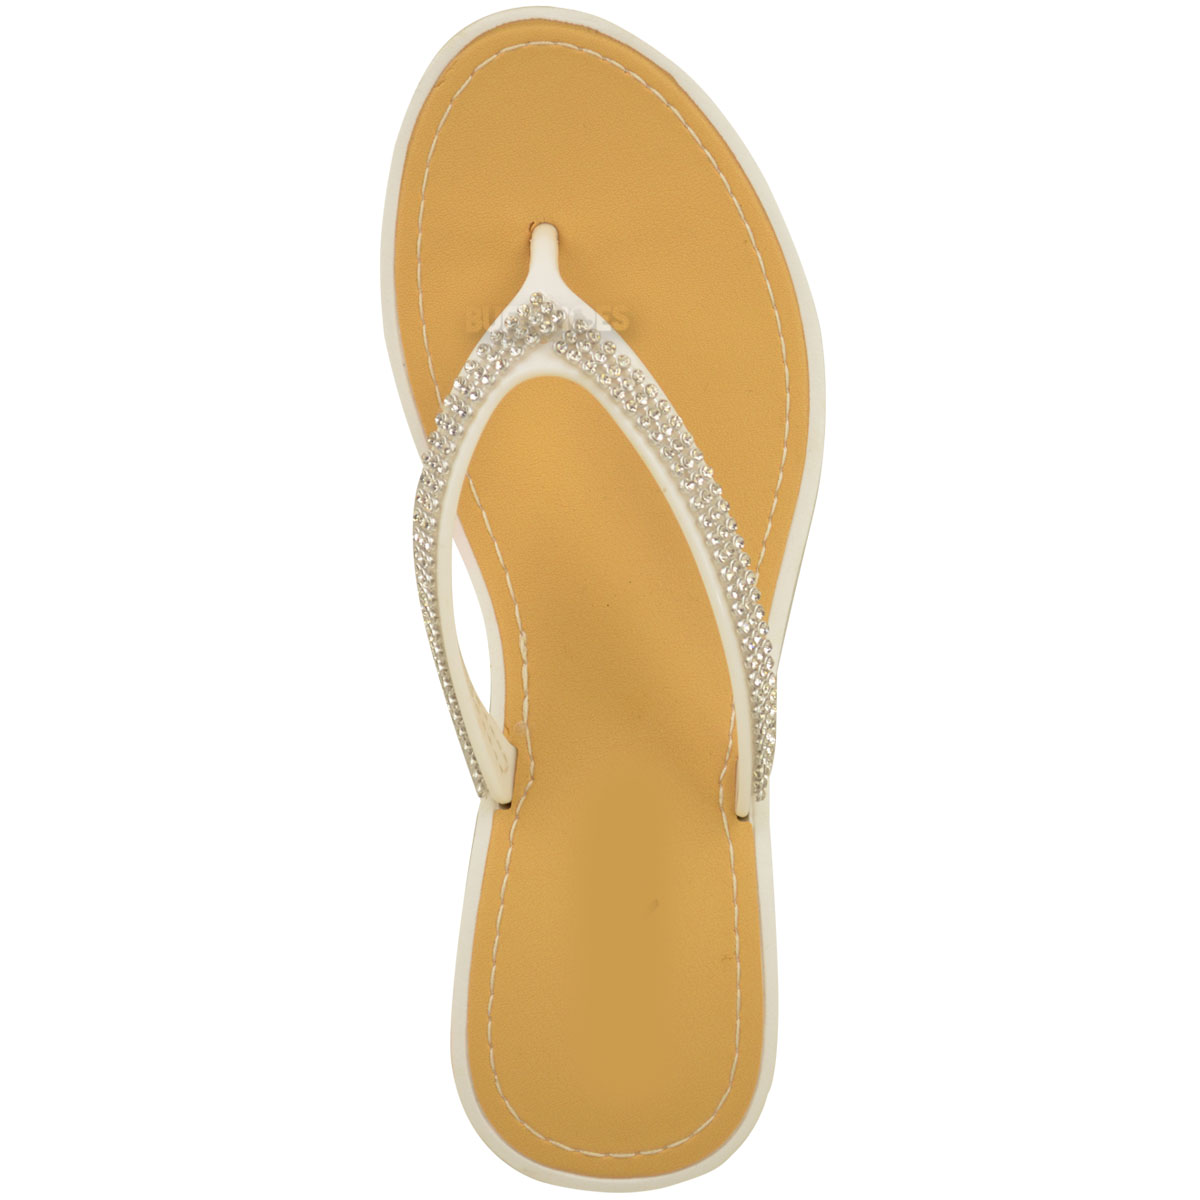 NEW-JELLY-SANDALS-WOMENS-LADIES-DIAMANTE-SUMMER-HOLIDAY-COMFORTS-FLIP-FLOPS-SIZE thumbnail 13